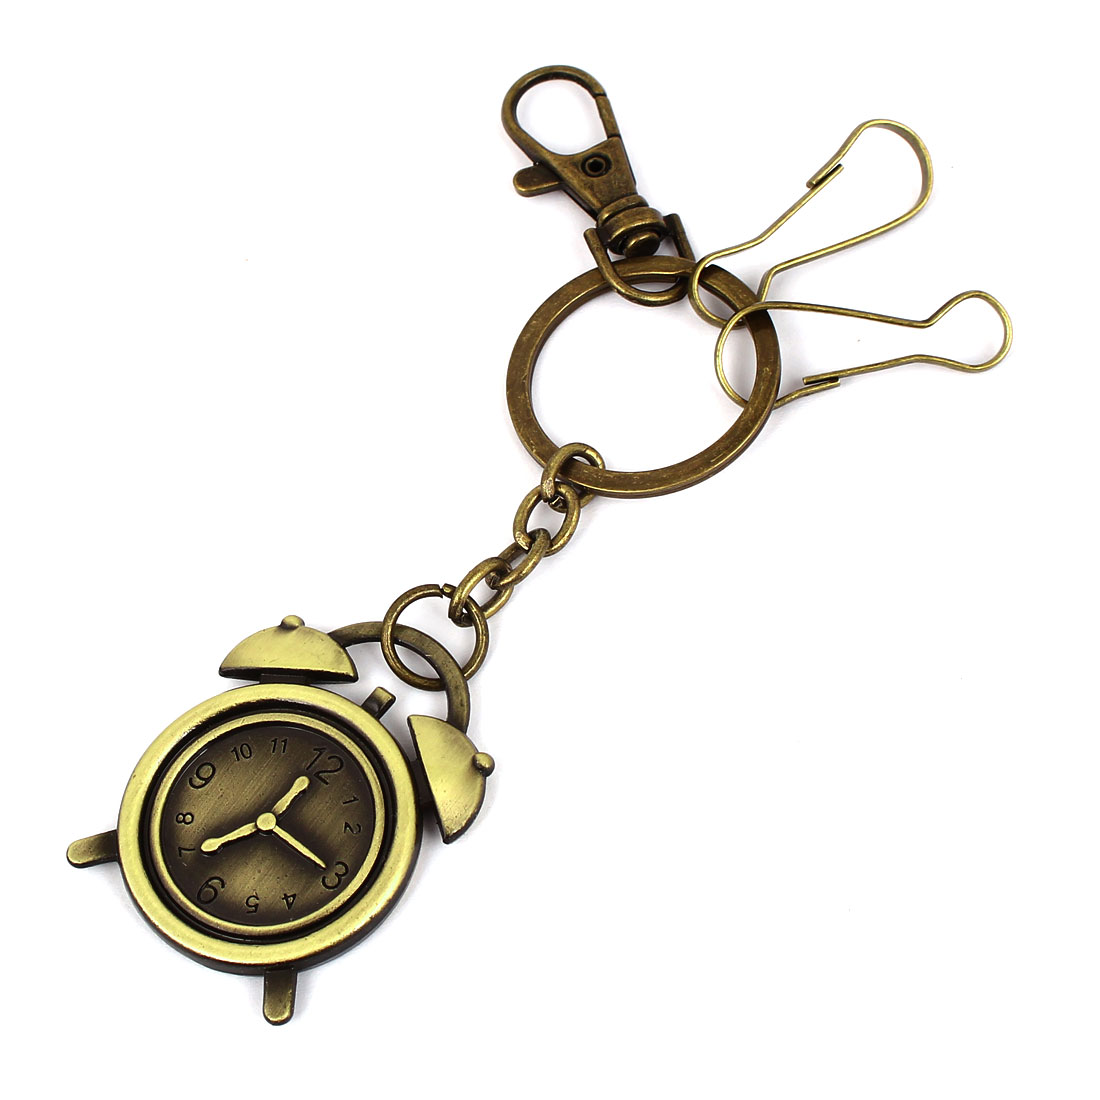 Metal Alarm Clock Model Keyring Keychain Bag Pendant Bronze Tone